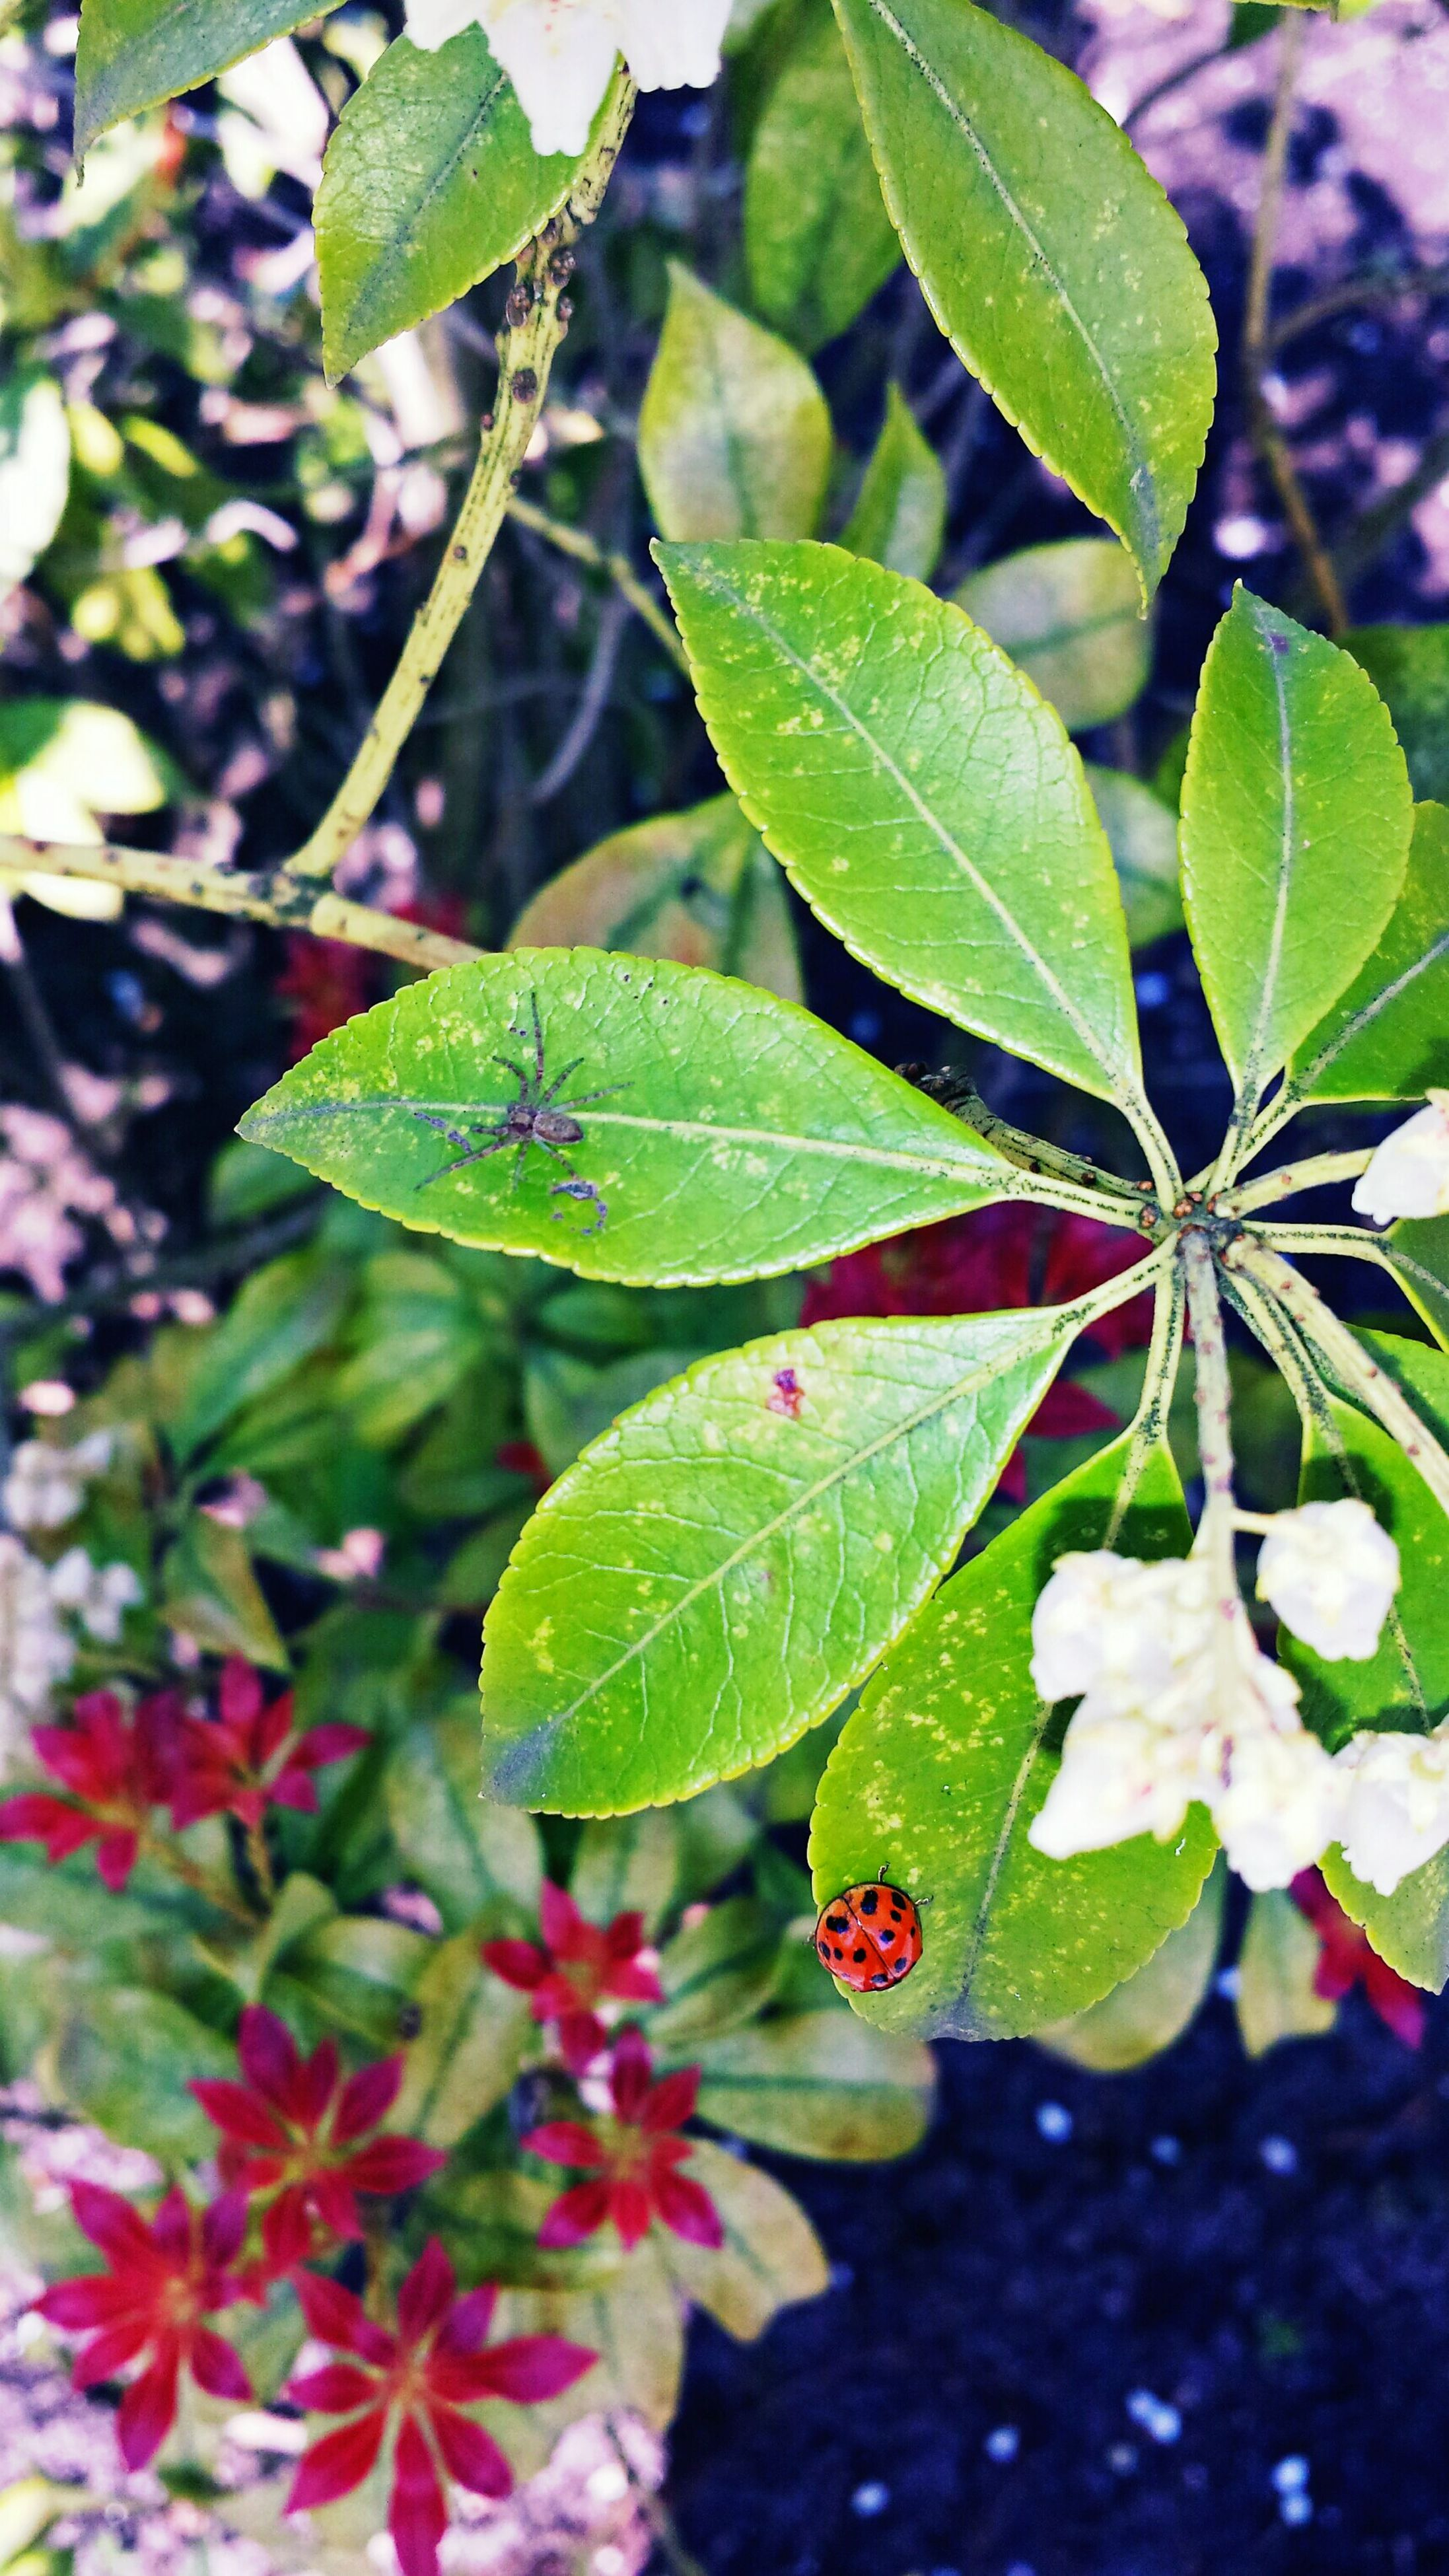 leaf, growth, freshness, nature, close-up, plant, green color, beauty in nature, focus on foreground, fragility, flower, leaves, leaf vein, outdoors, day, branch, no people, selective focus, botany, season